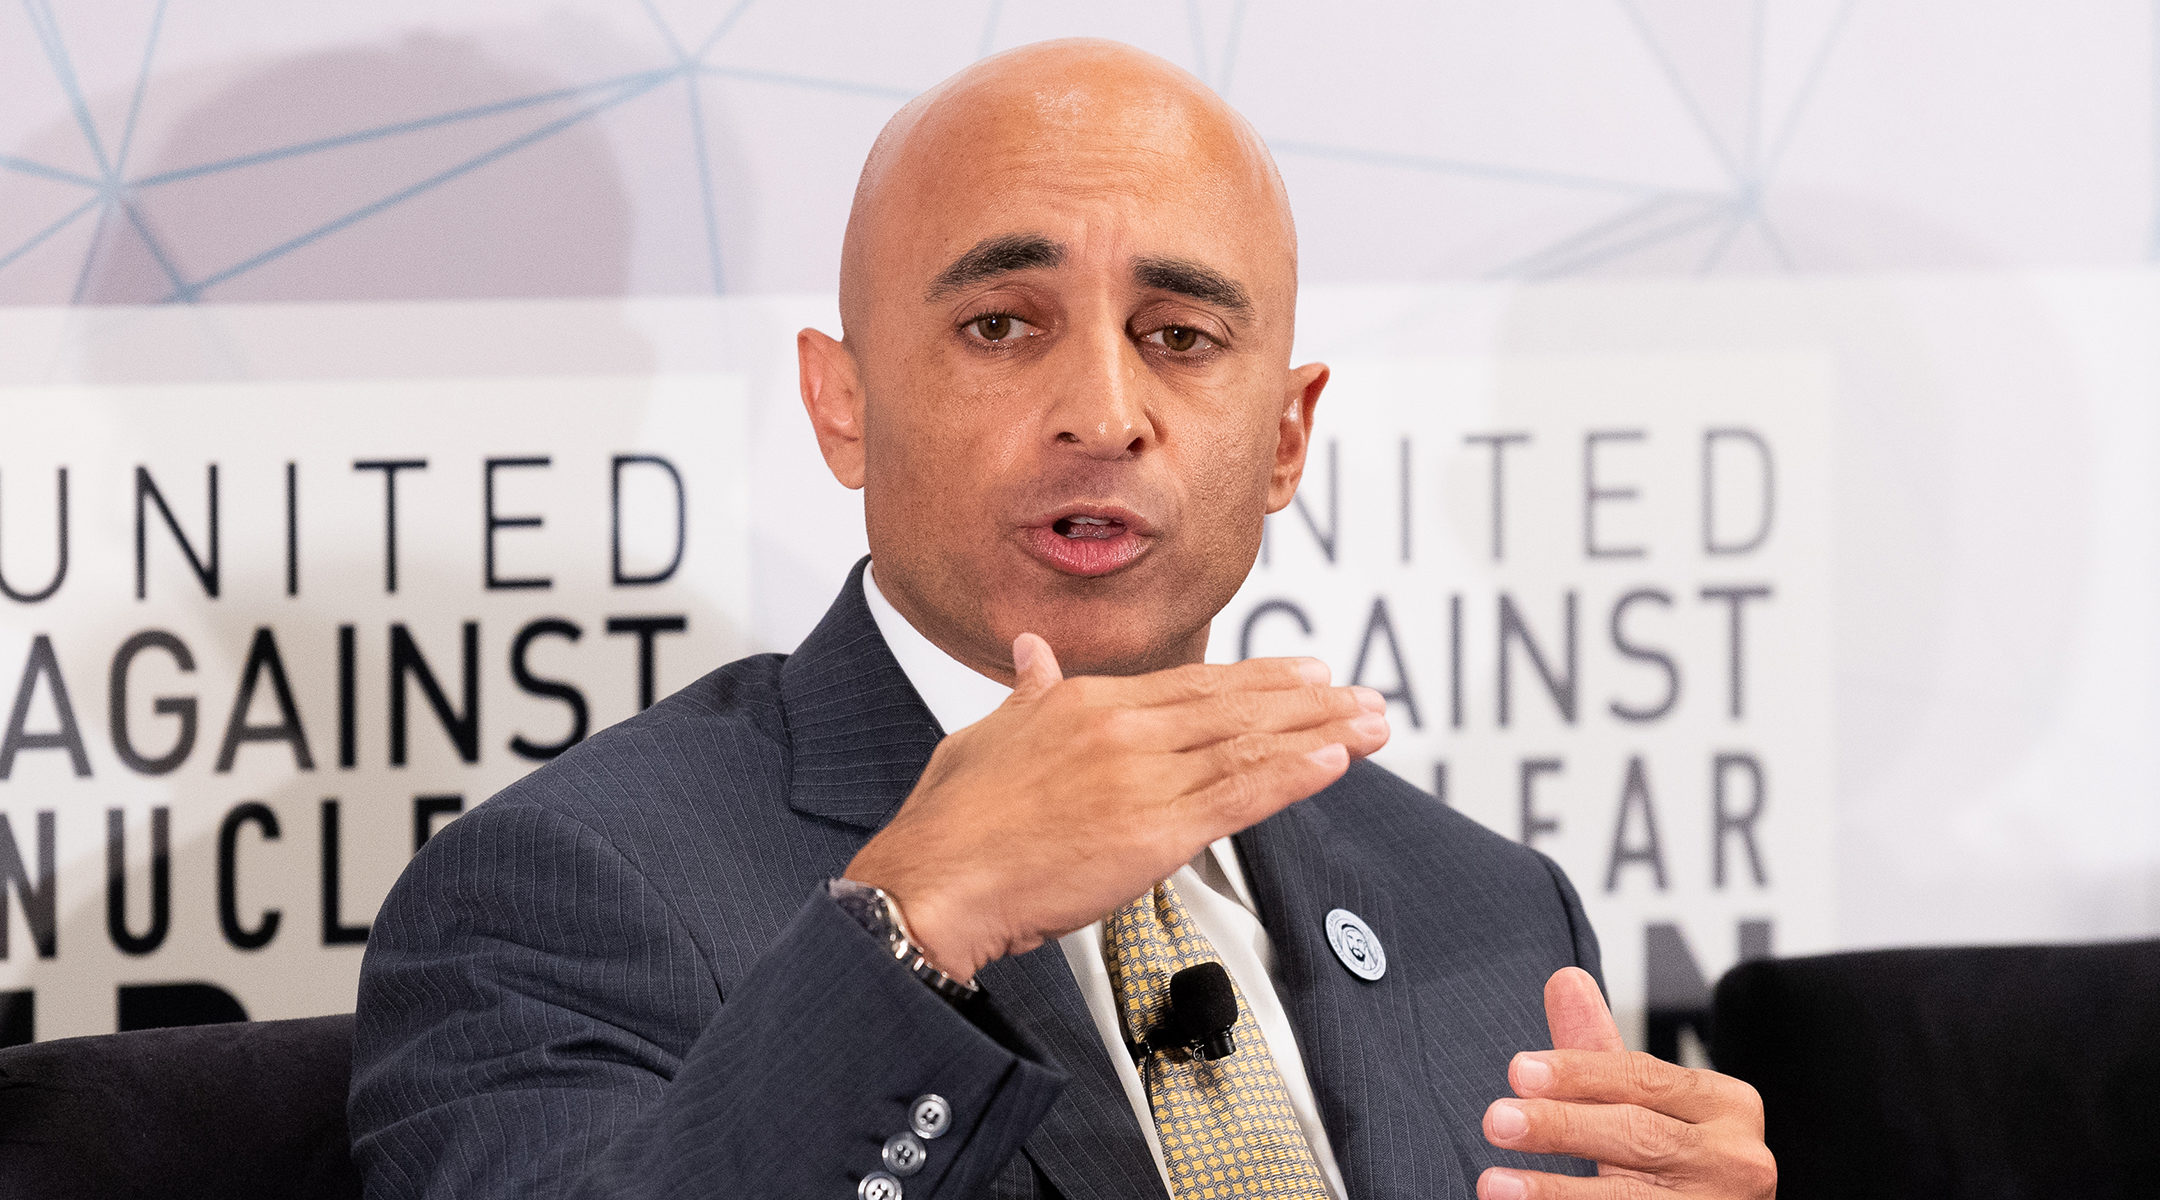 Yousef Al Otaiba, Ambassador of the United Arab Emirates to the United States, speaks at the United Against Nuclear Iran 2018 Summit in New York City. (Michael Brochstein/SOPA Images/LightRocket via Getty Images)